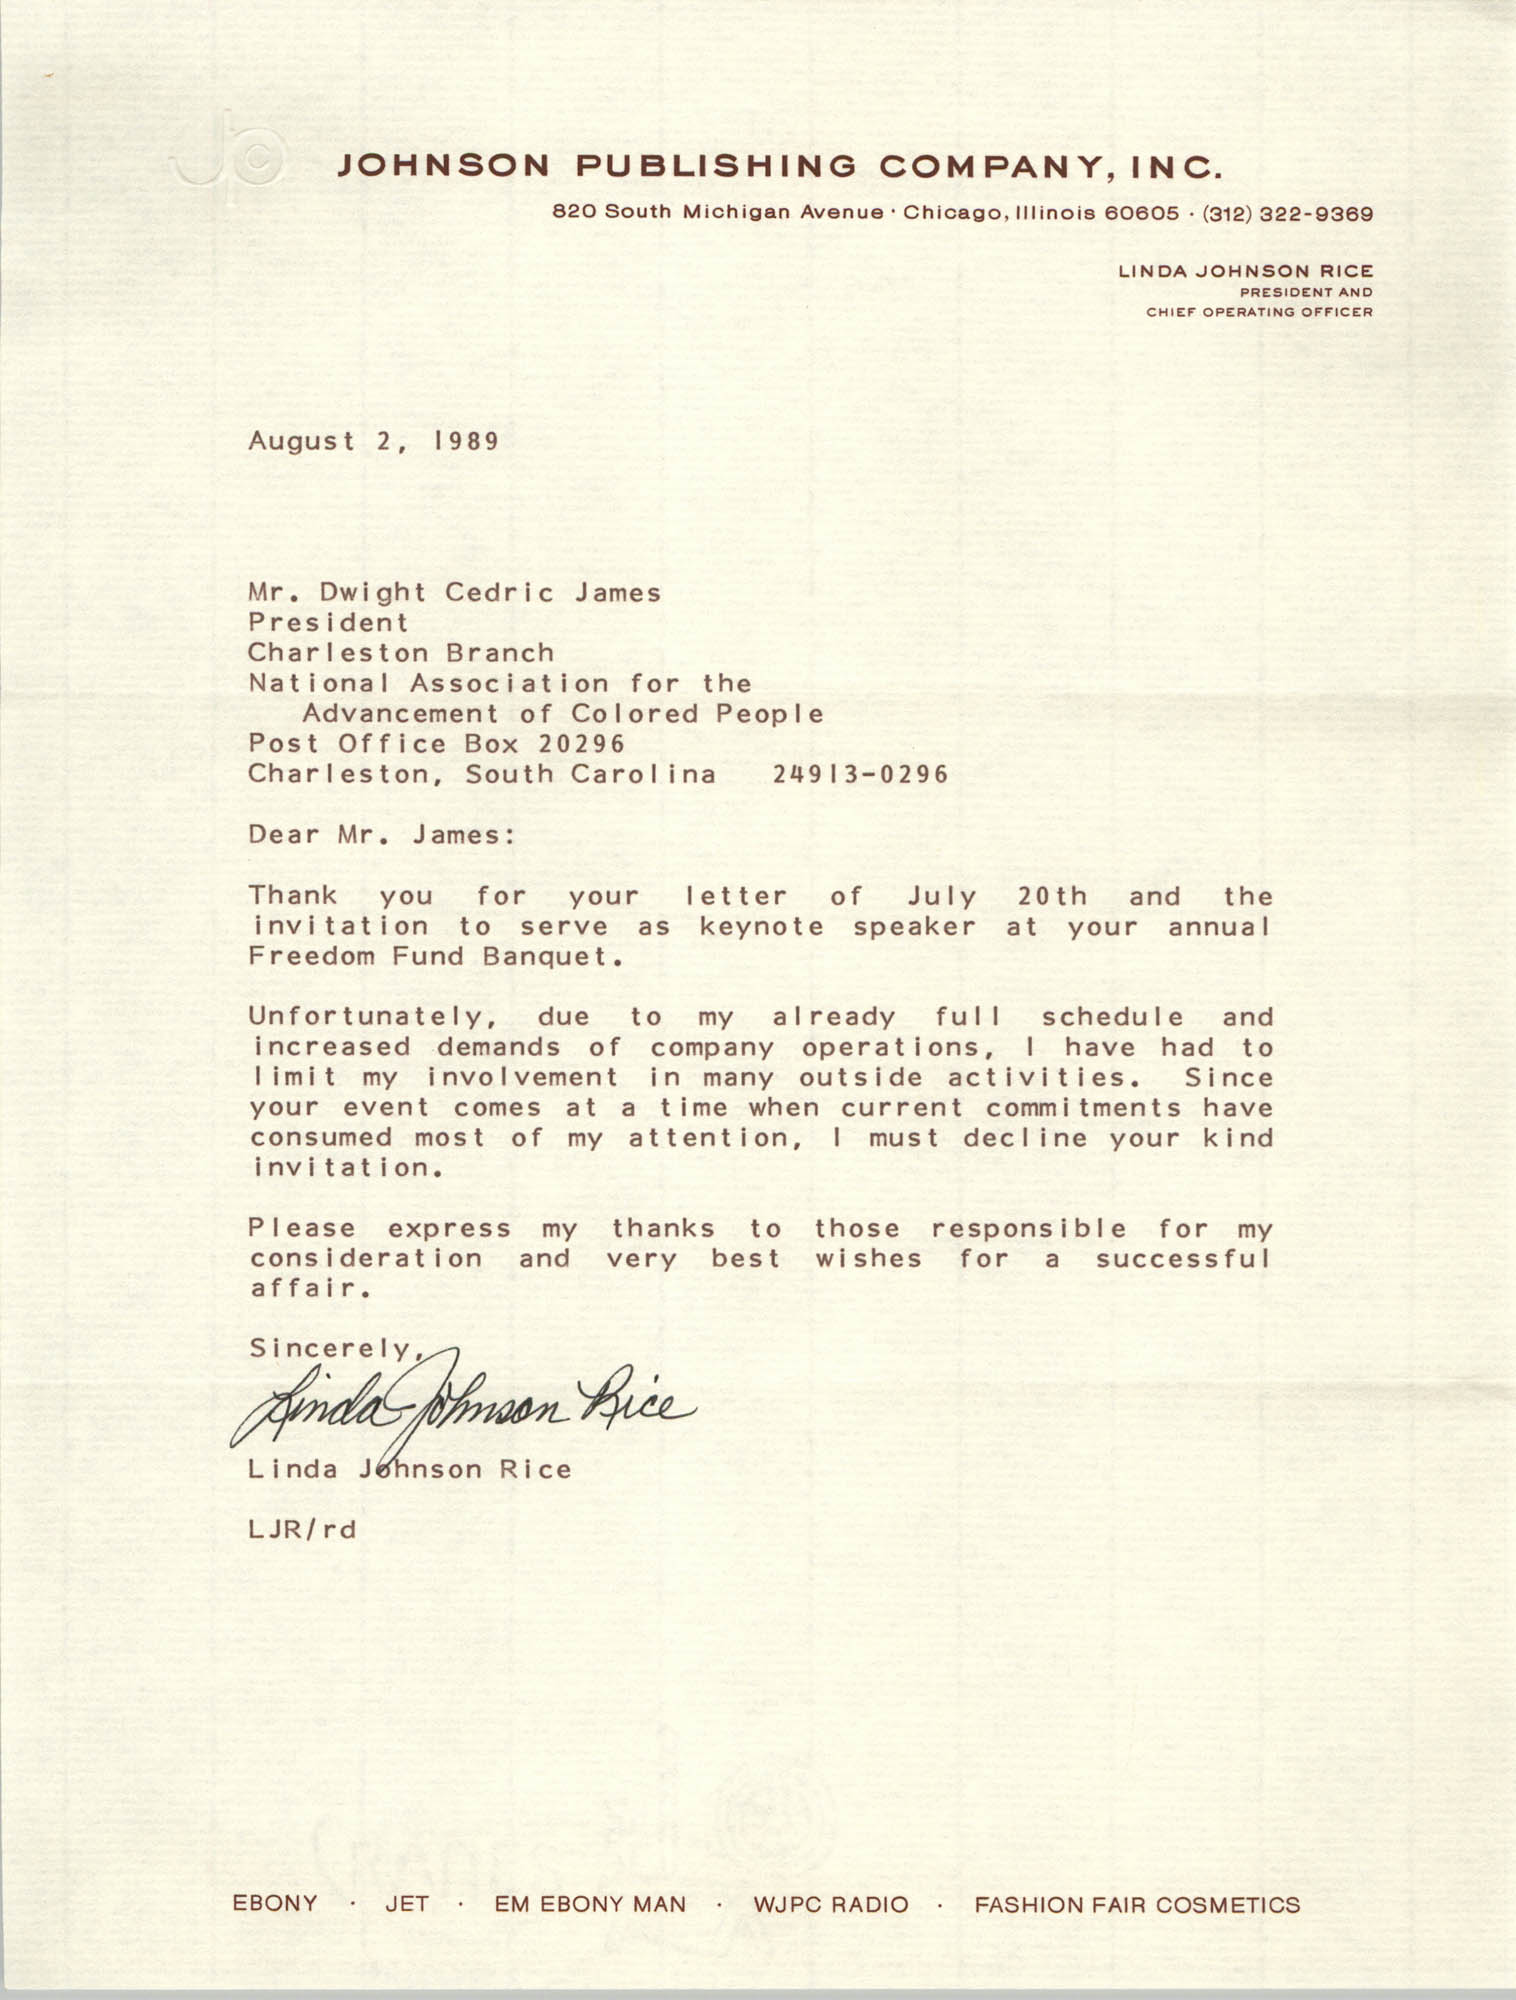 Letter from Linda Johnson-Rice to Dwight C. James, August 2, 1989